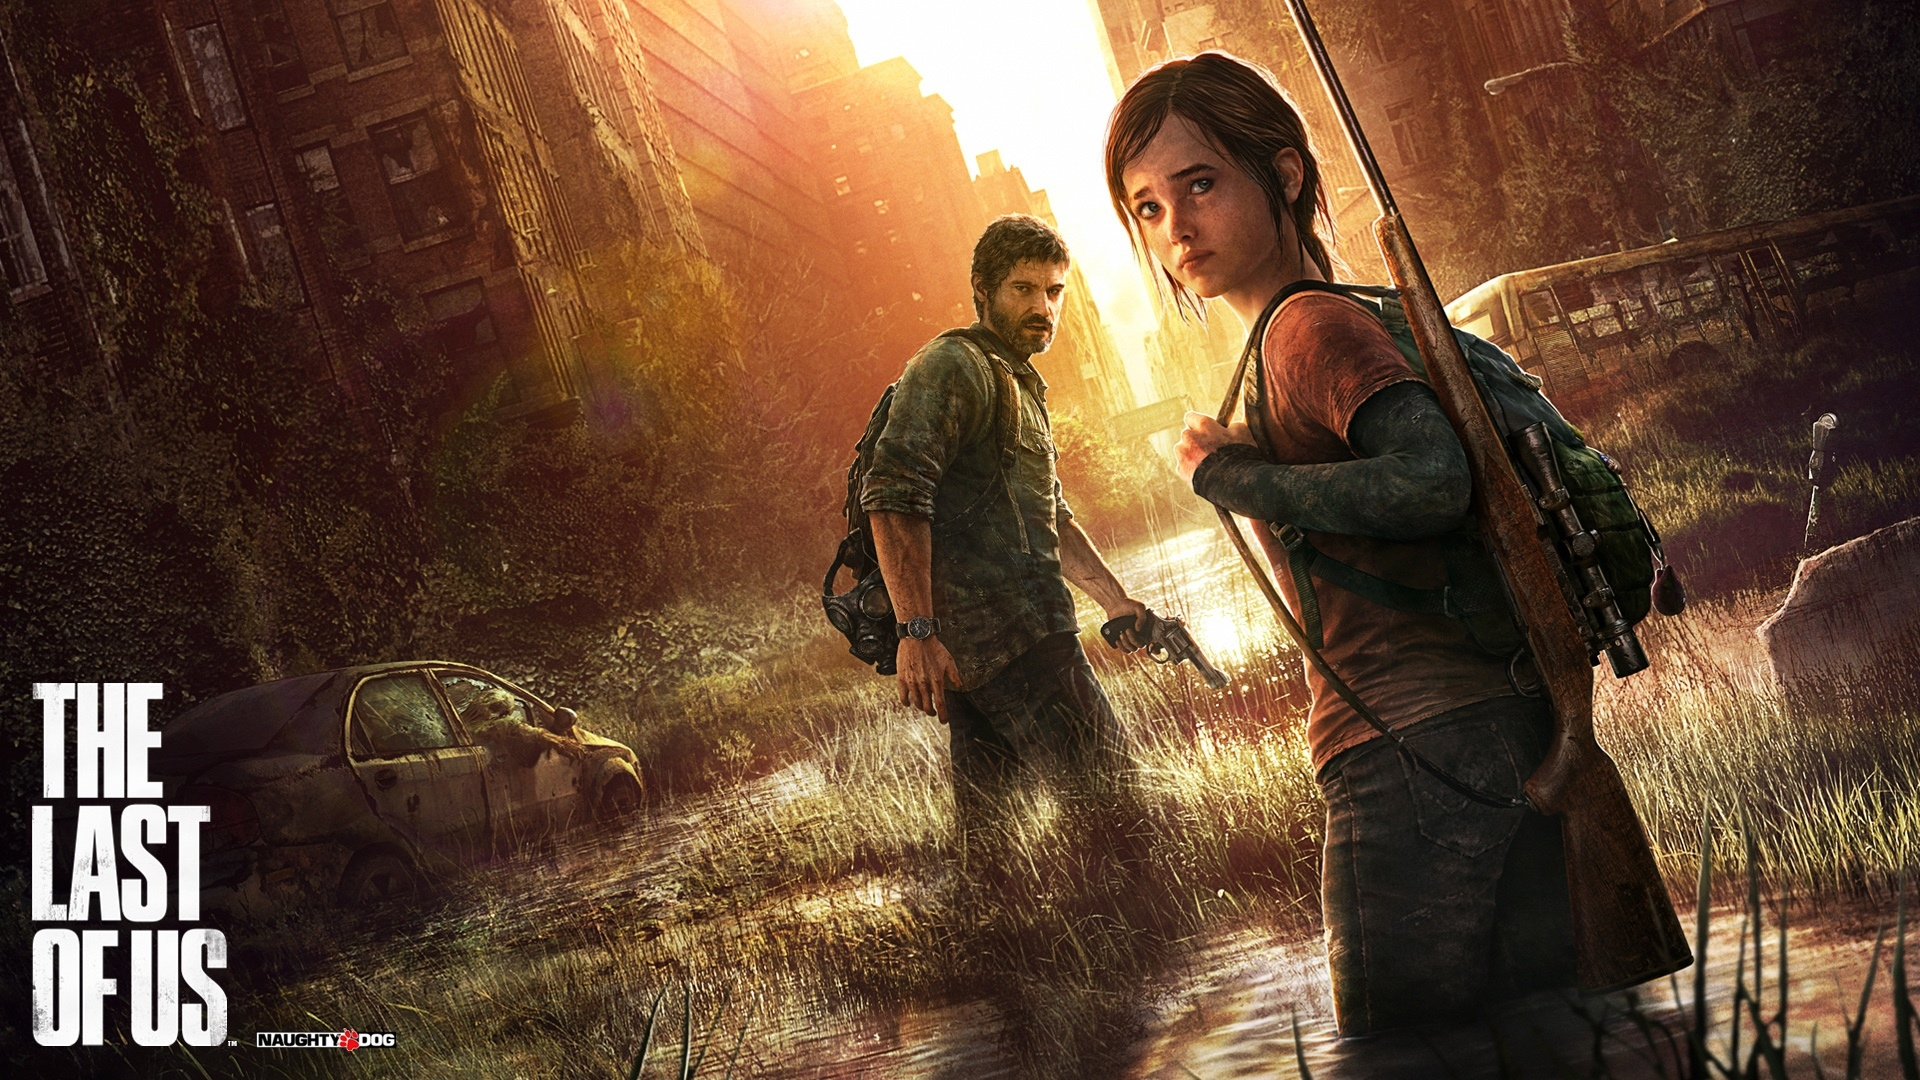 The Last of Us Part 3 Release Date and Story Rumors